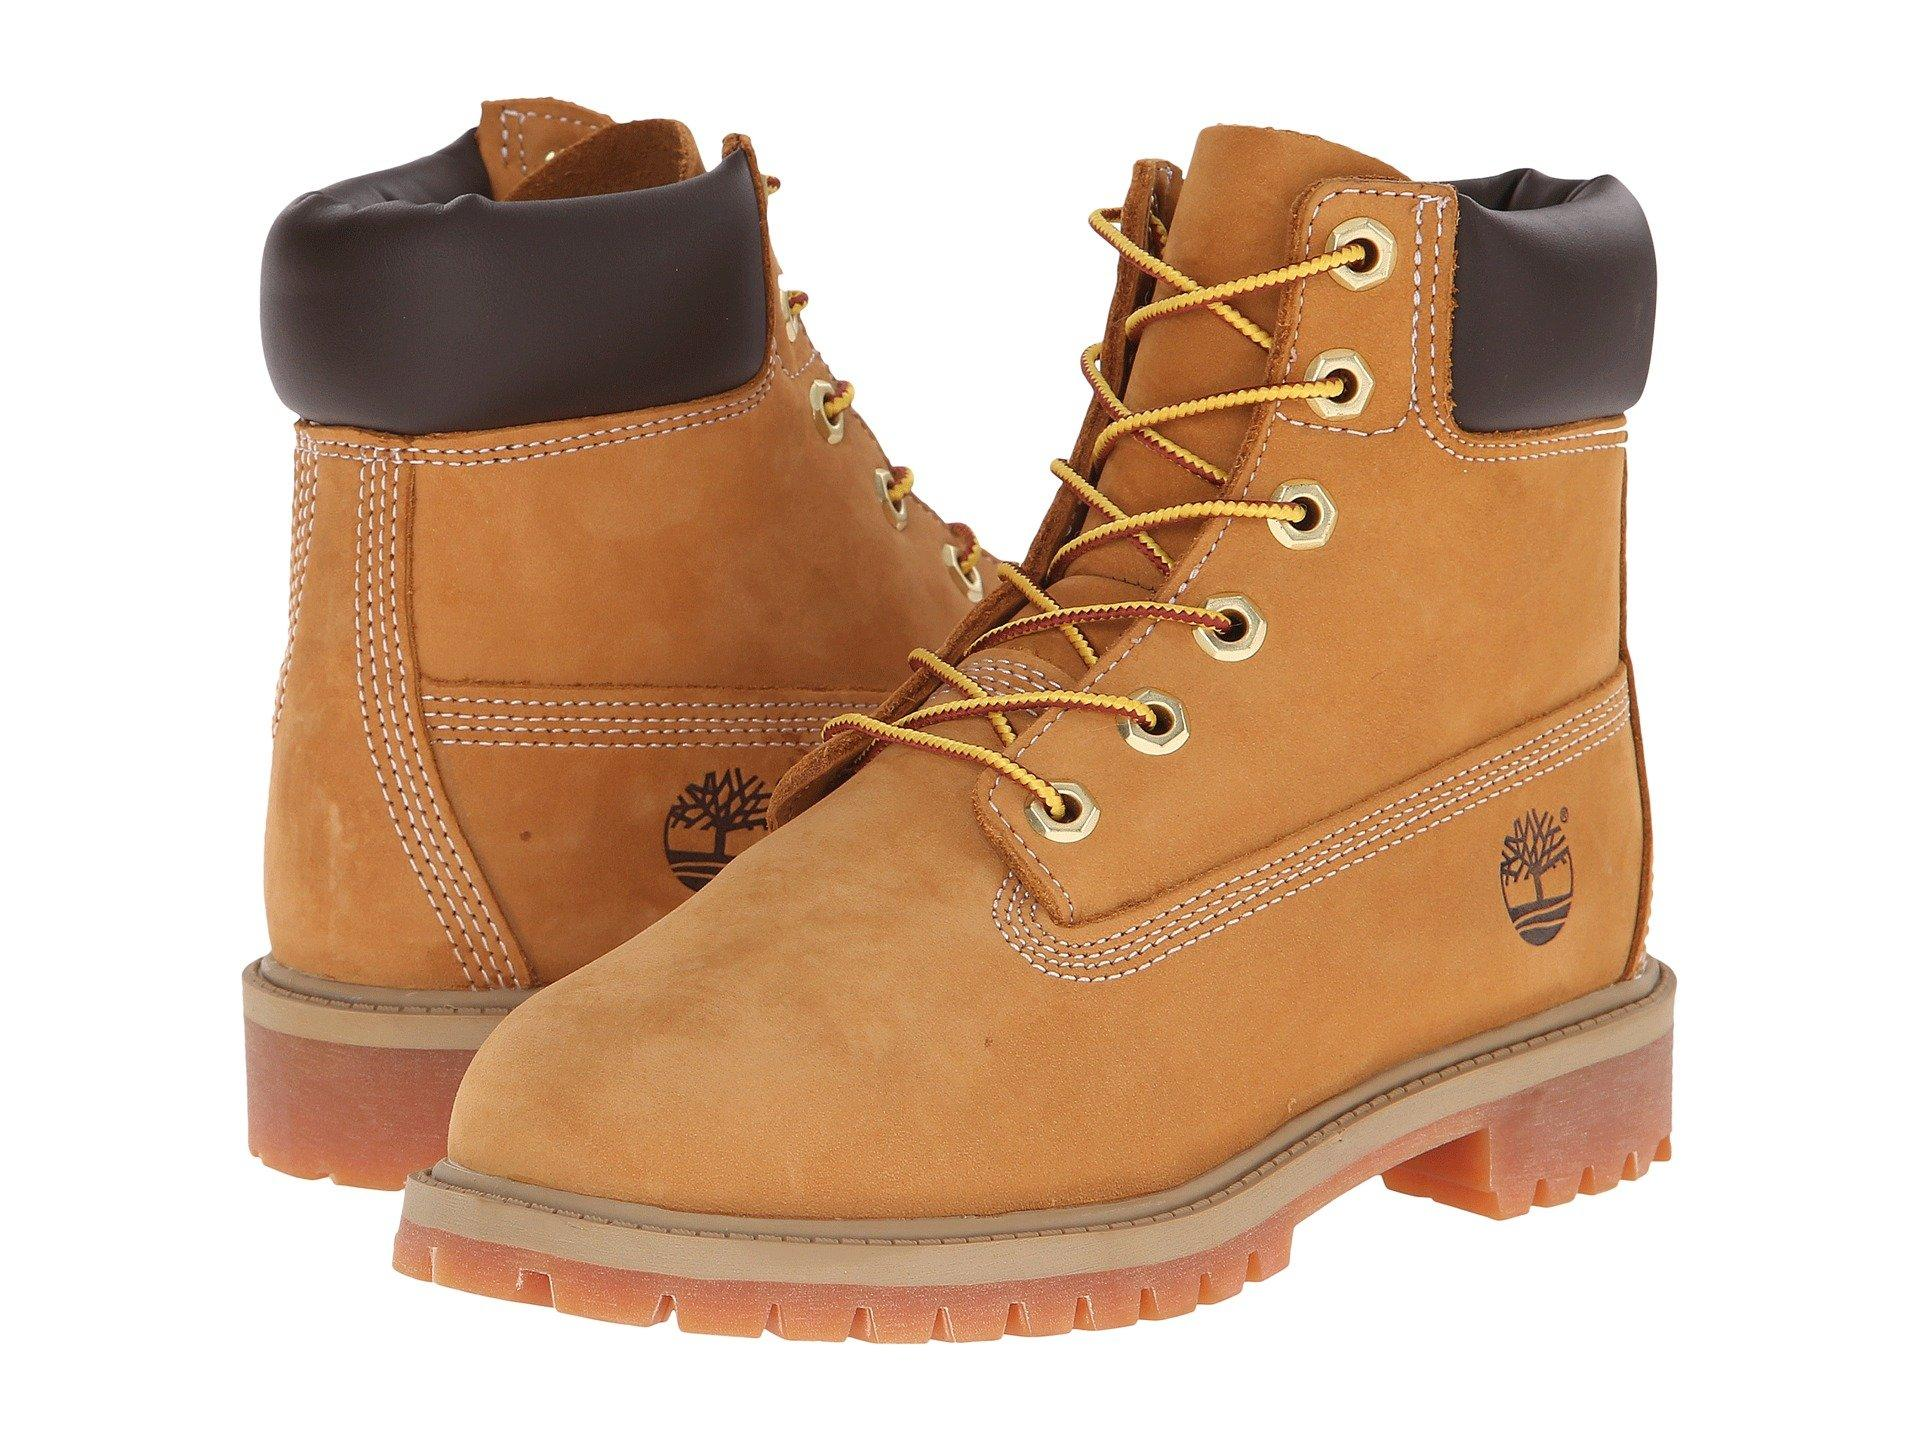 Timberland Boots Shoes Shipped FREE at Zappos Zapposcom